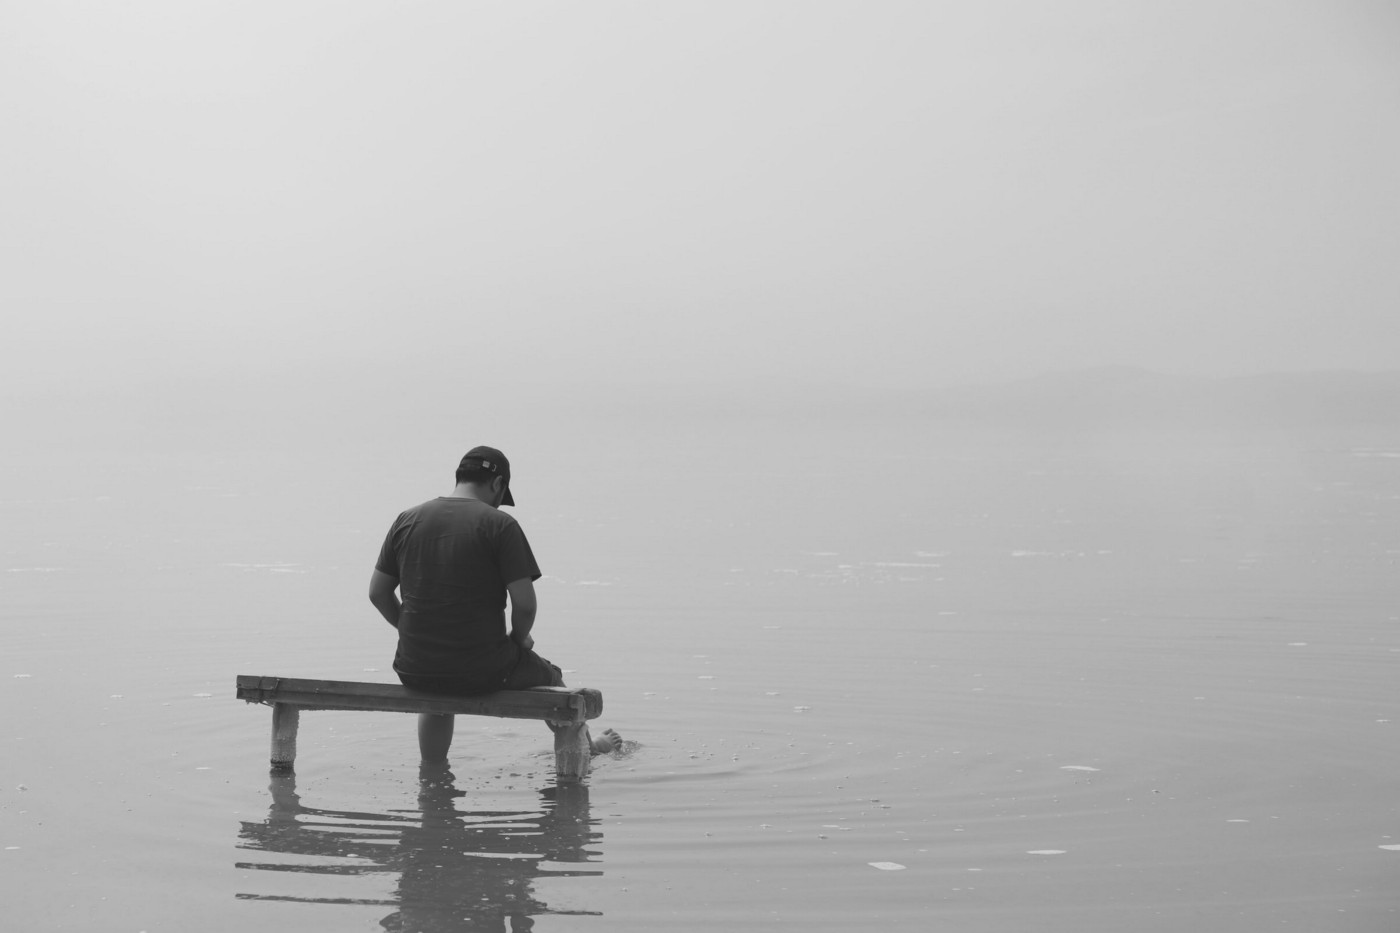 A person sitting on a bench that is underwater.